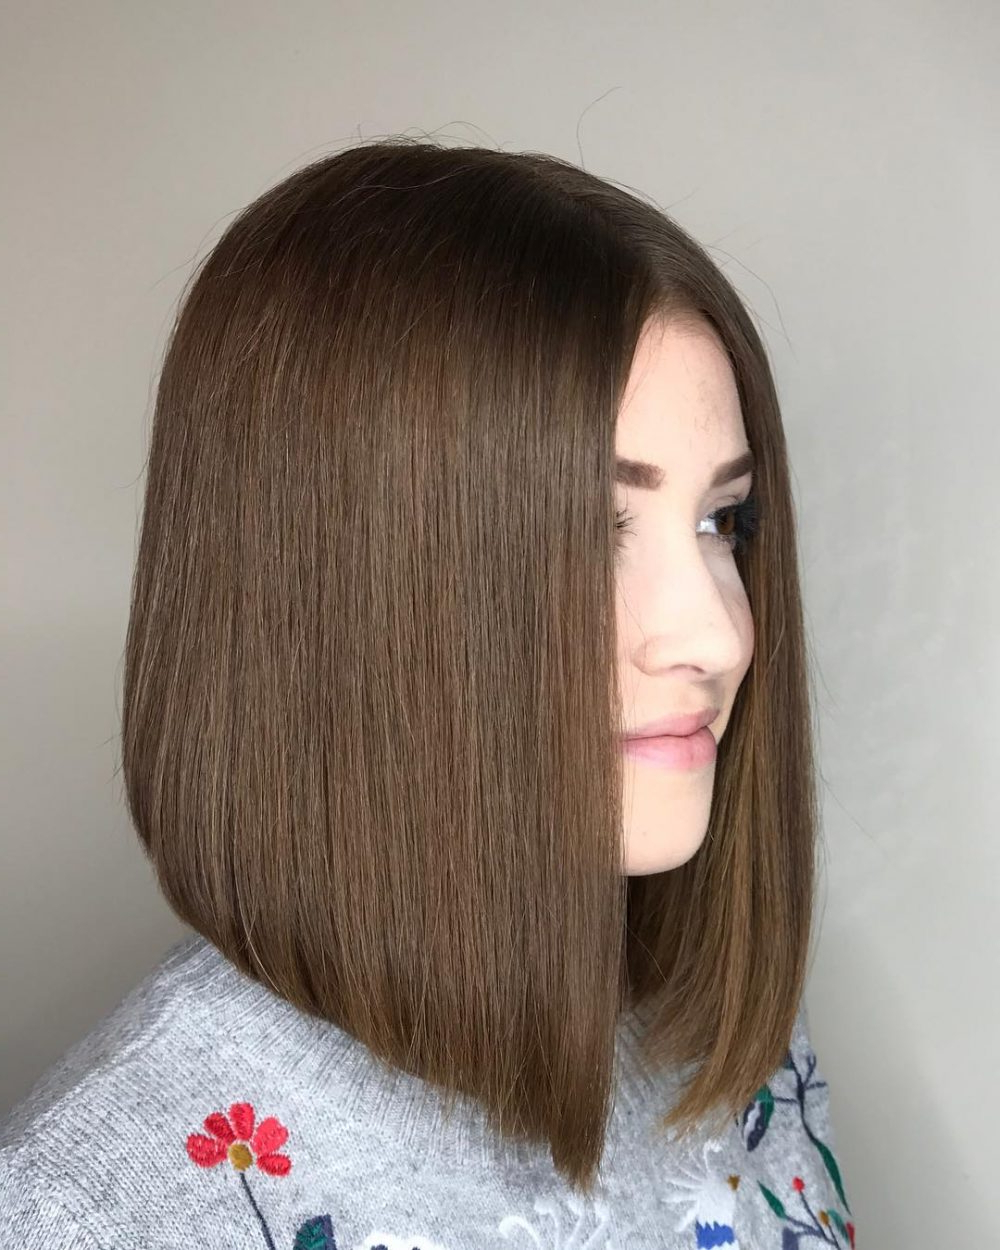 24 Flattering Middle Part Hairstyles In 2019 With Widely Used Long Bob Middle Part Hairstyles (View 4 of 20)